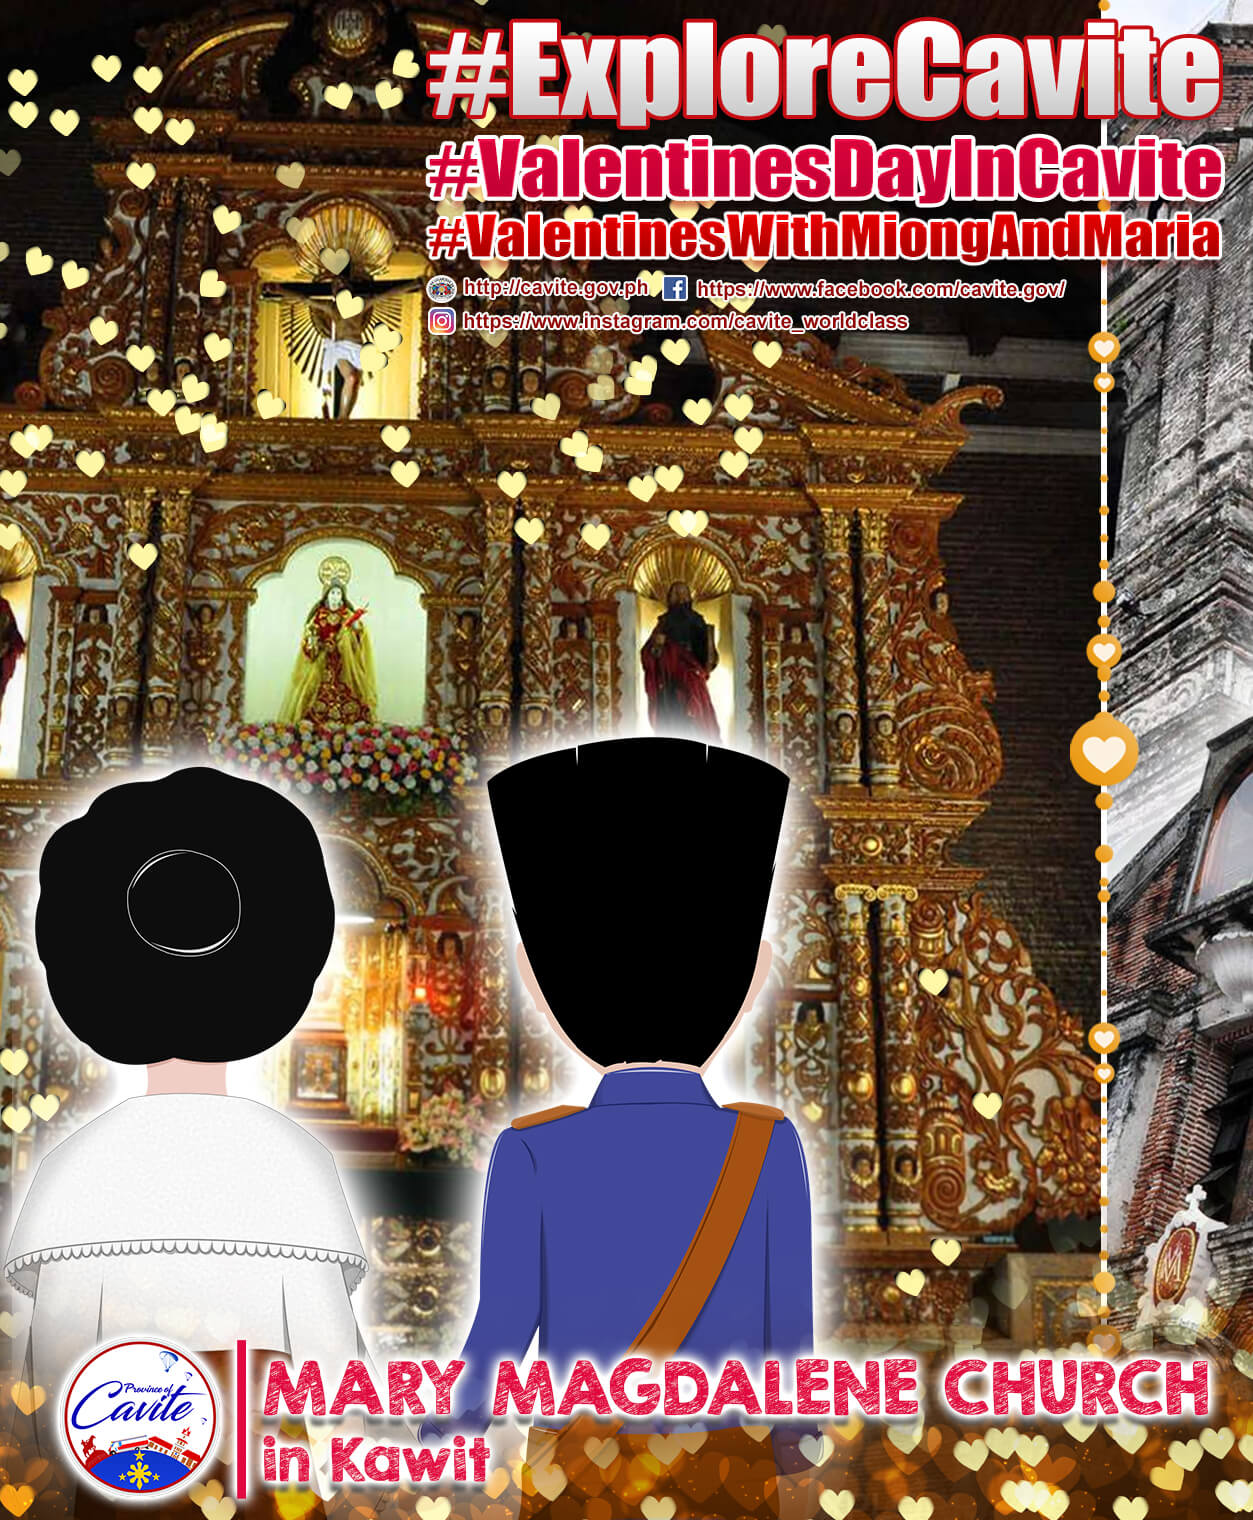 Explore Cavite – Mary Magdalene Church in Kawit